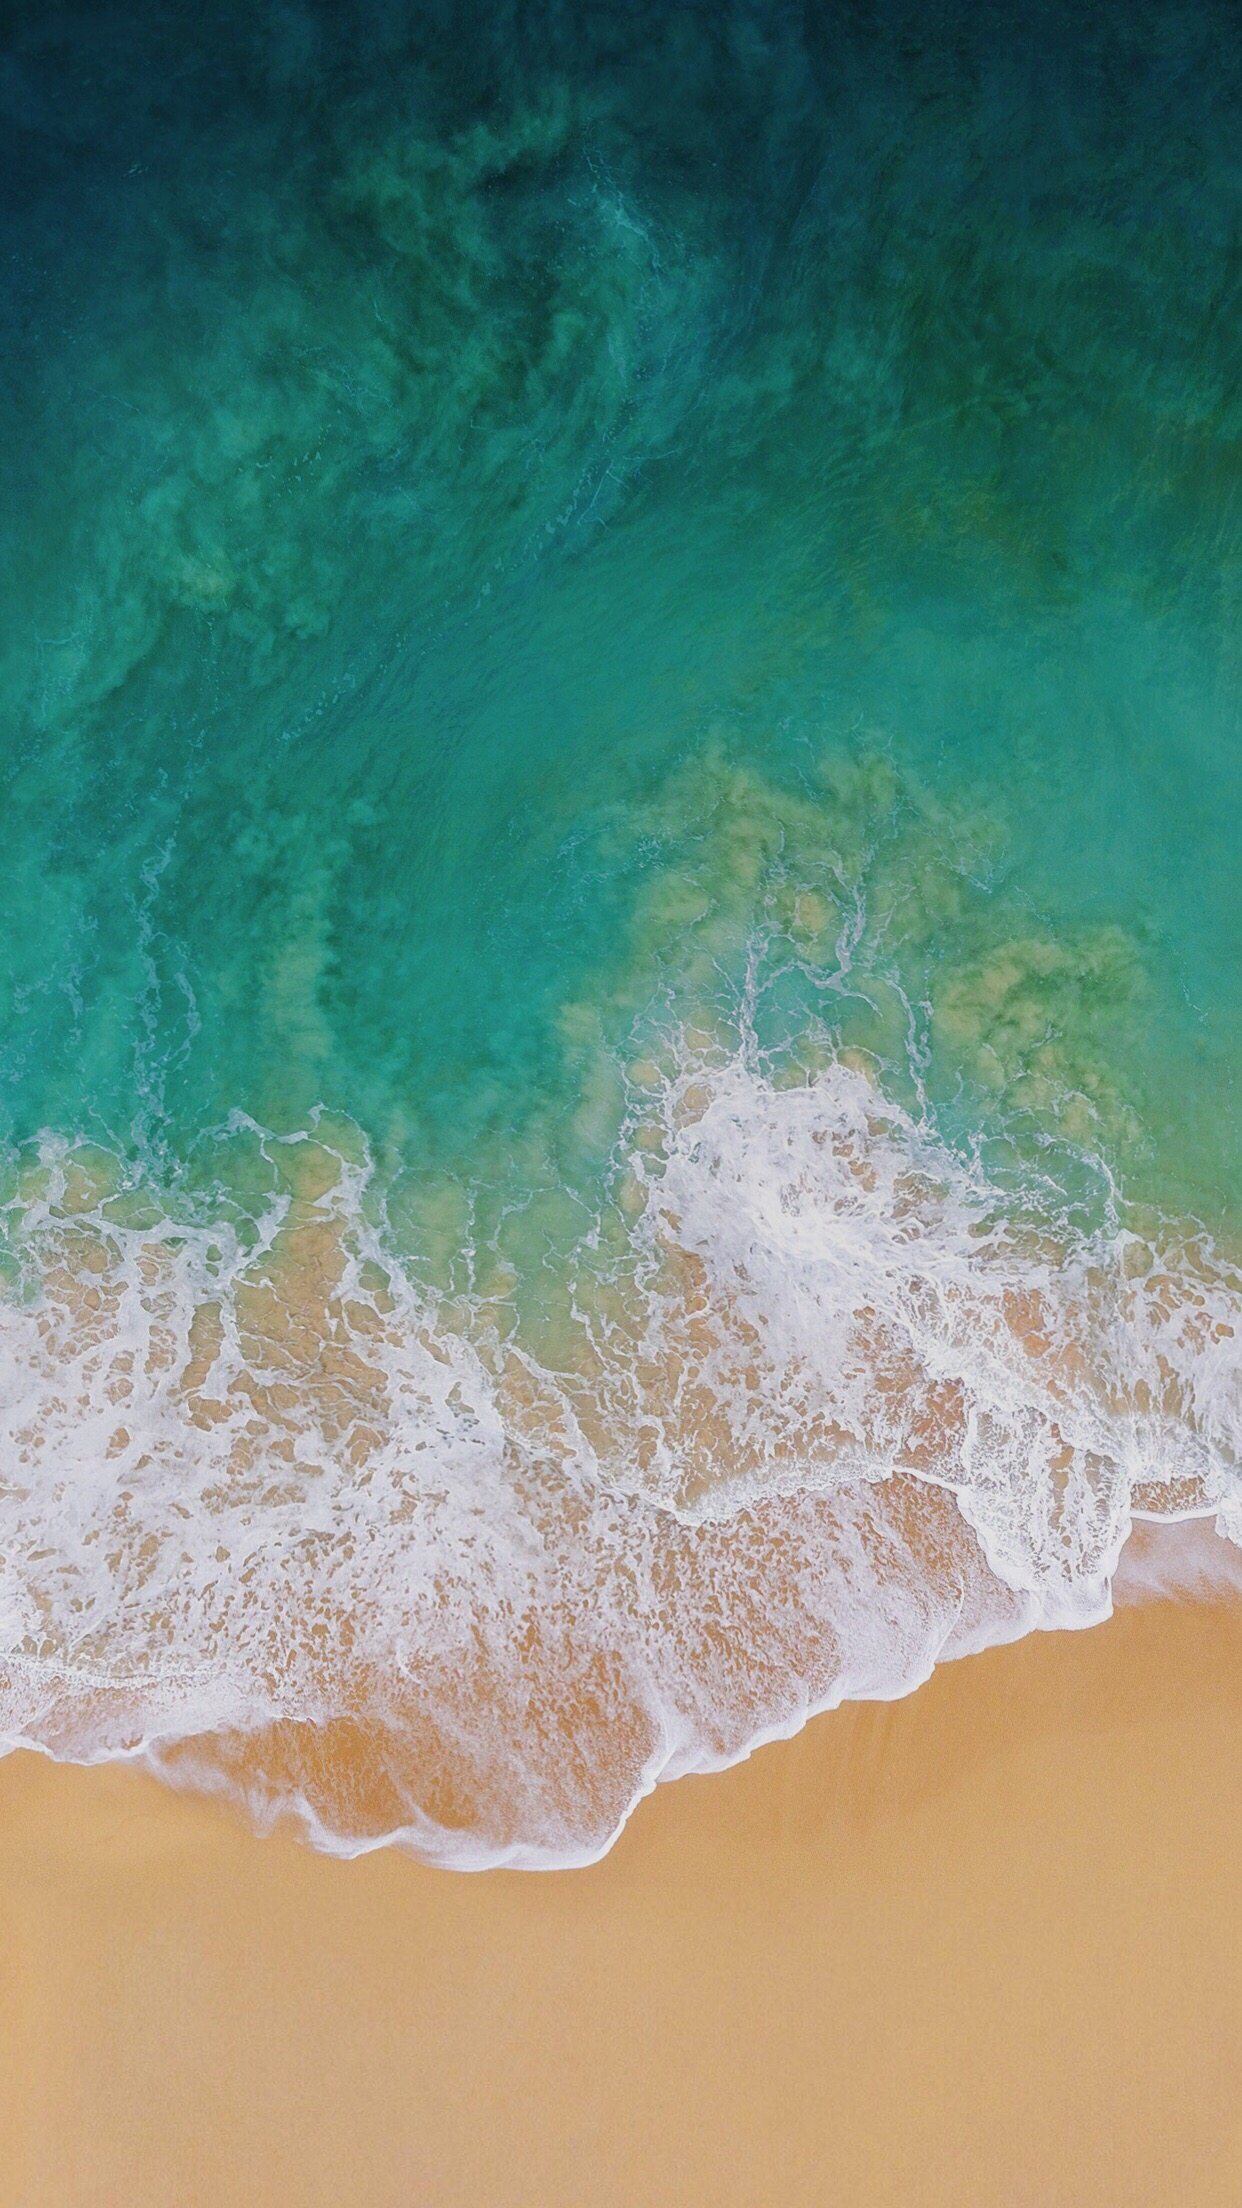 Download the New iOS 11 Wallpaper for iPhone 1242x2208